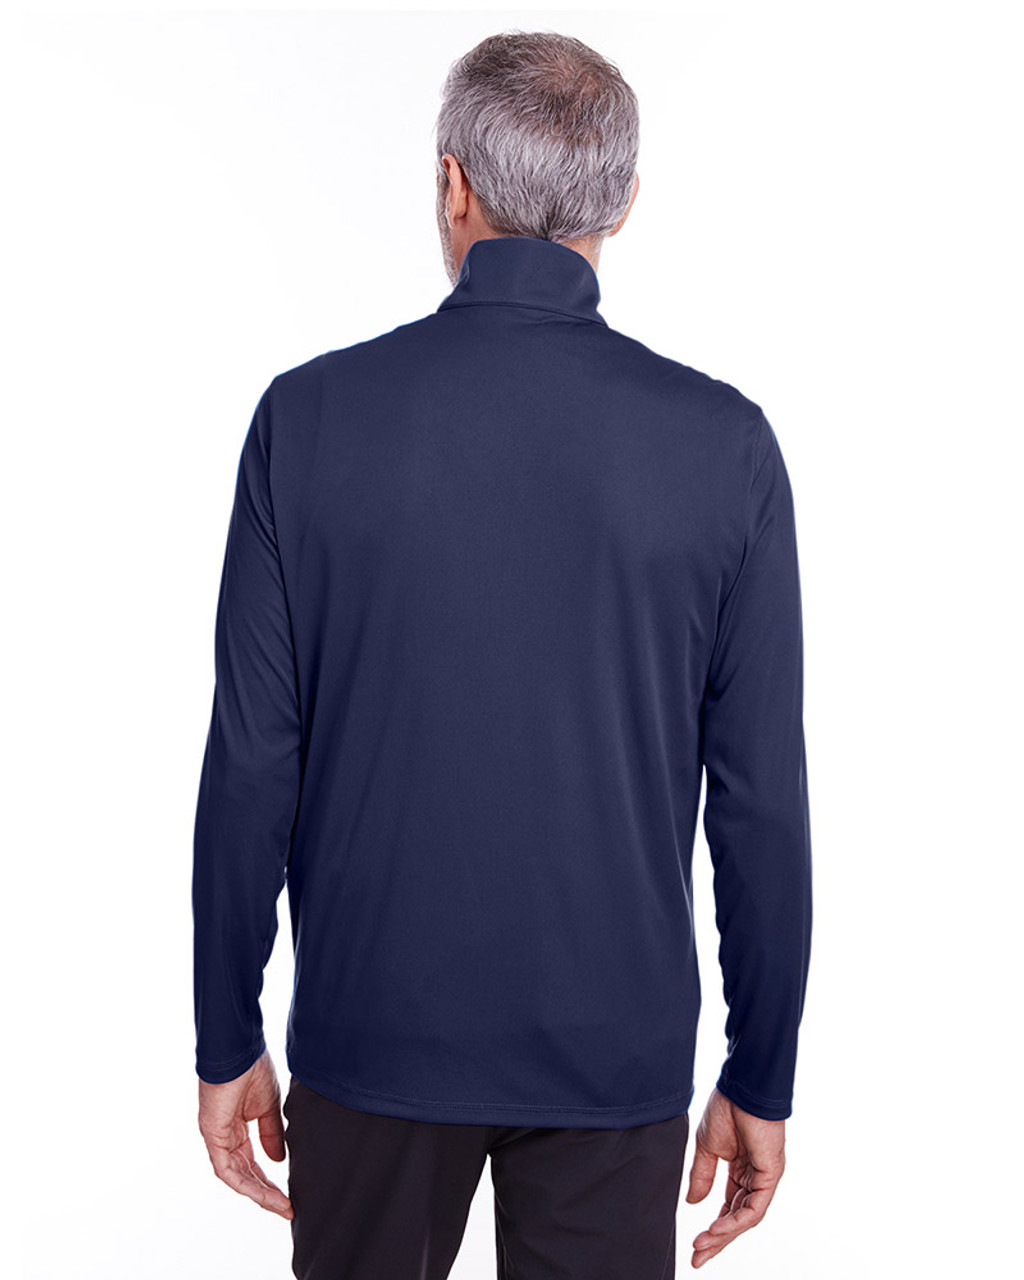 Peacoat - back, 596807 Puma Golf Men's Icon Quarter-Zip Shirt | Blankclothing.ca